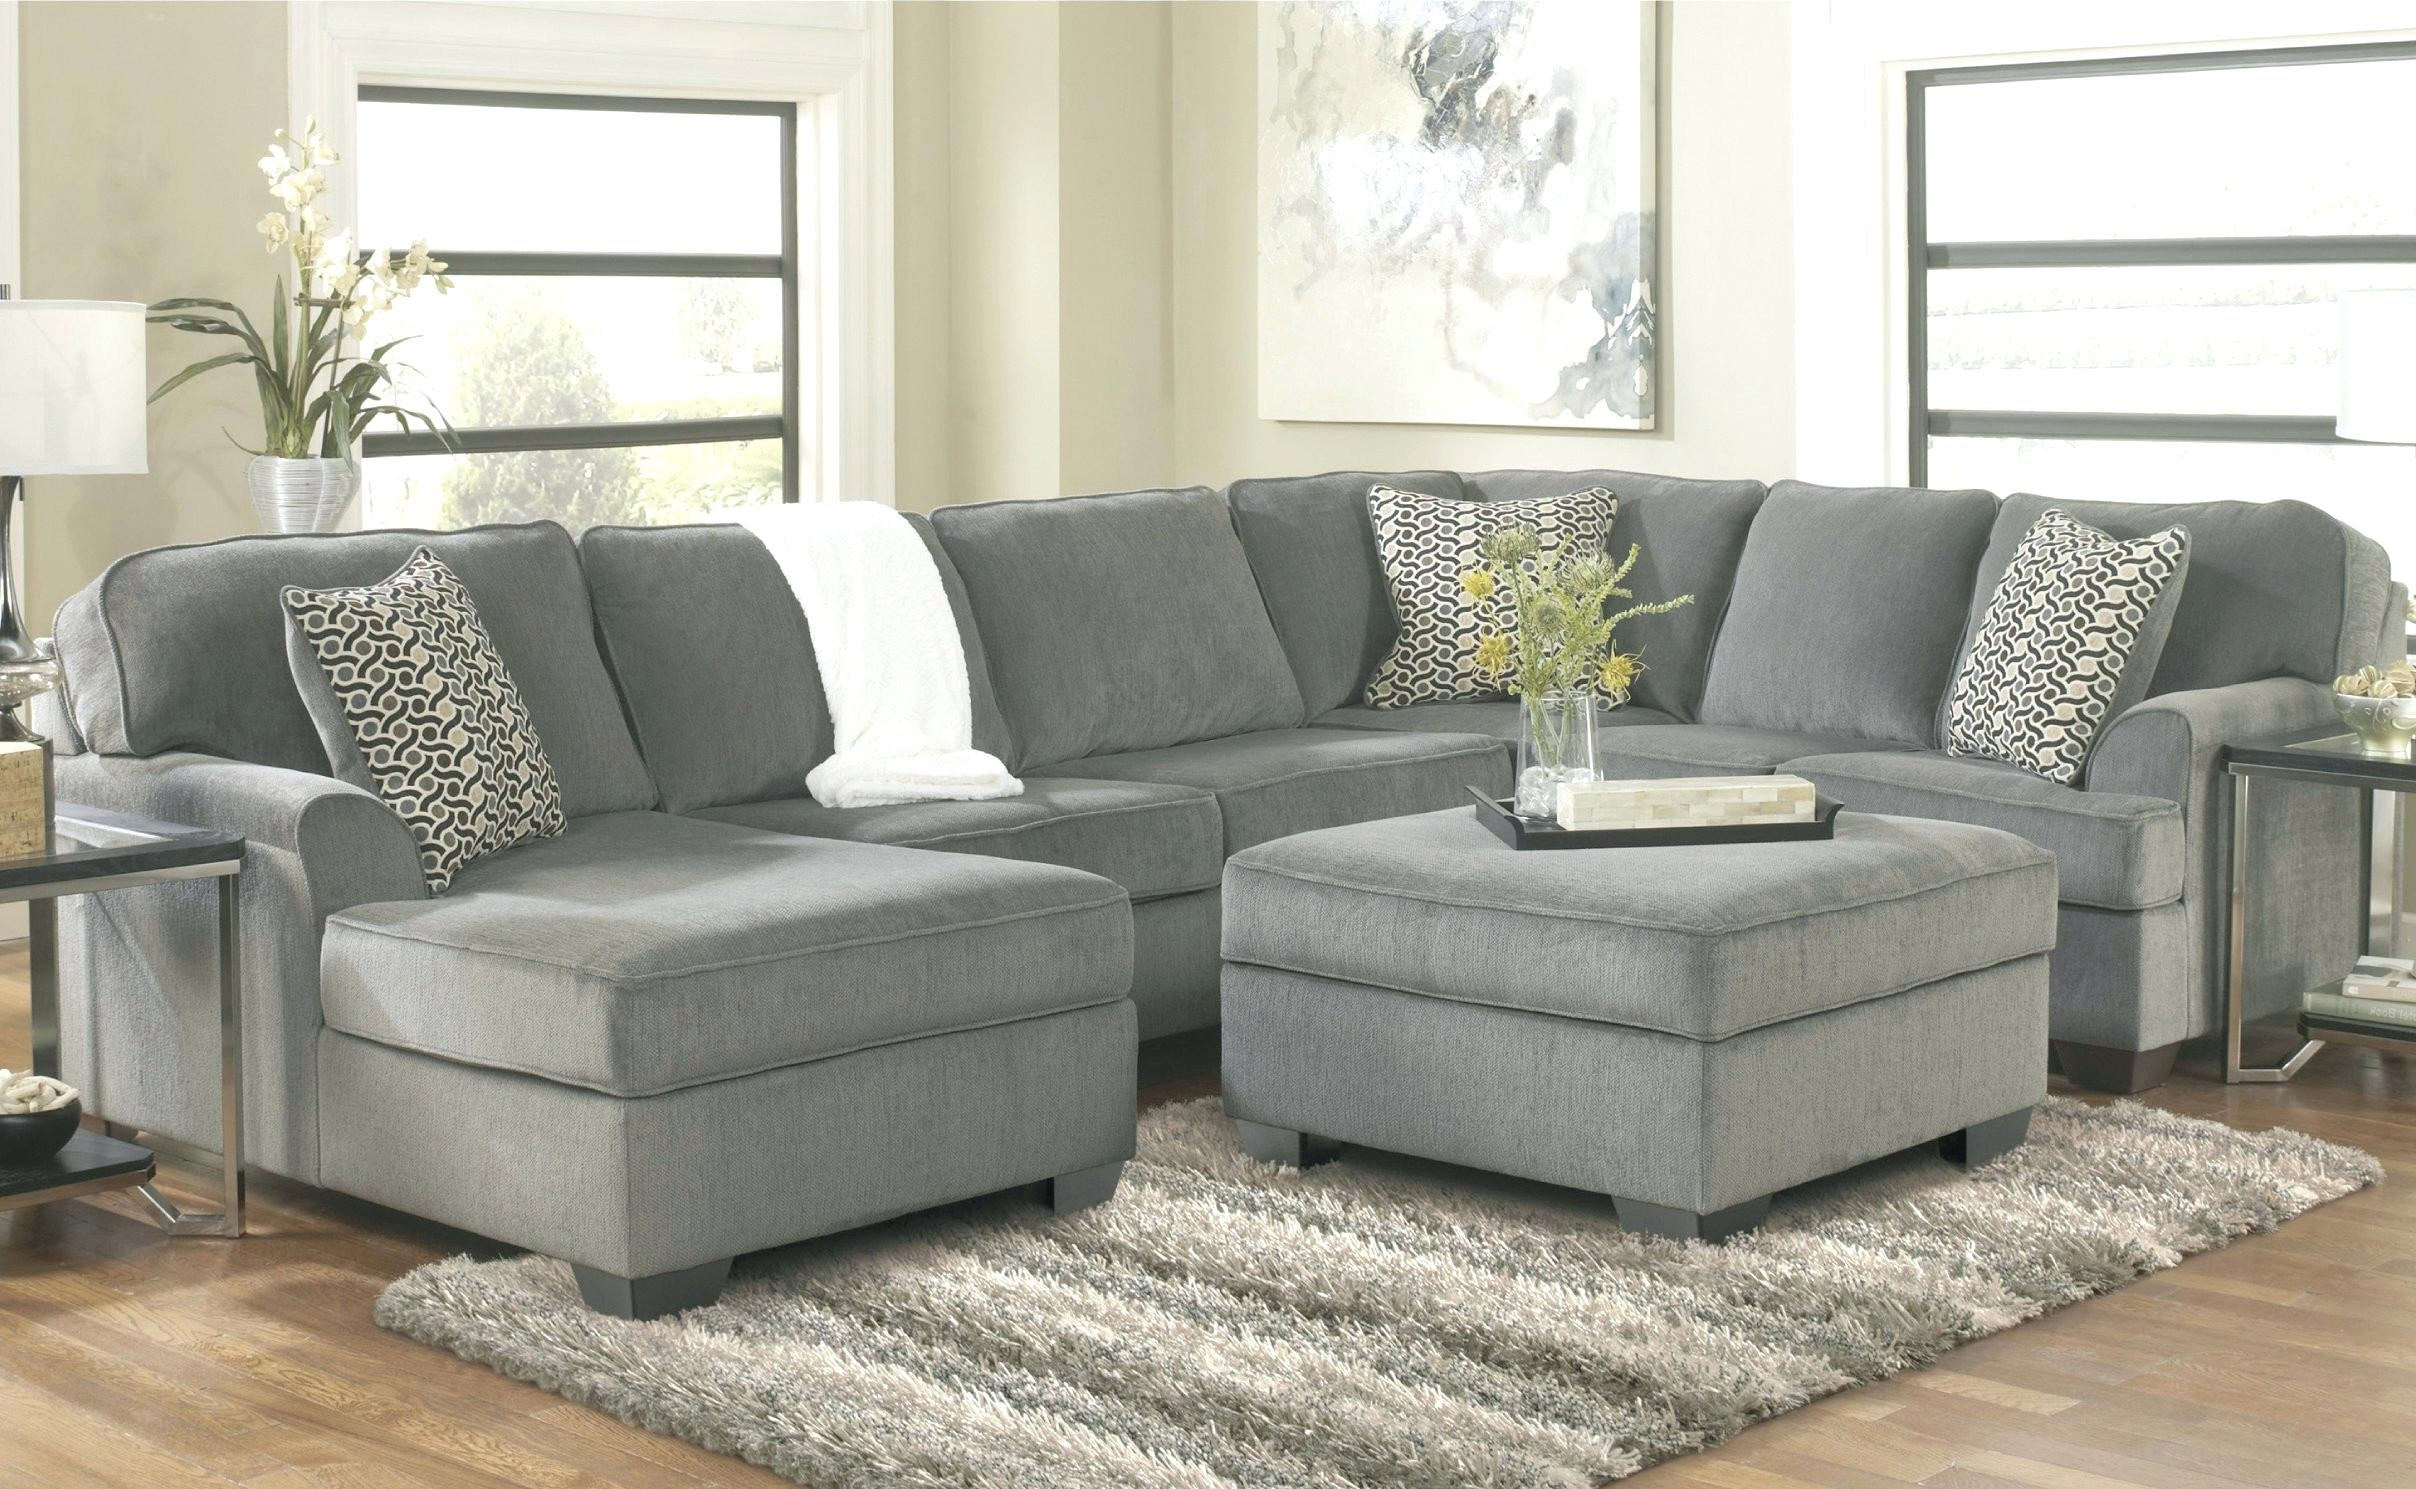 Favorite Clearance Sectional Sofas With Regard To Clearance Sectional Sas Sa Outdoor Patio Furniture Sectionals Mn (View 12 of 15)